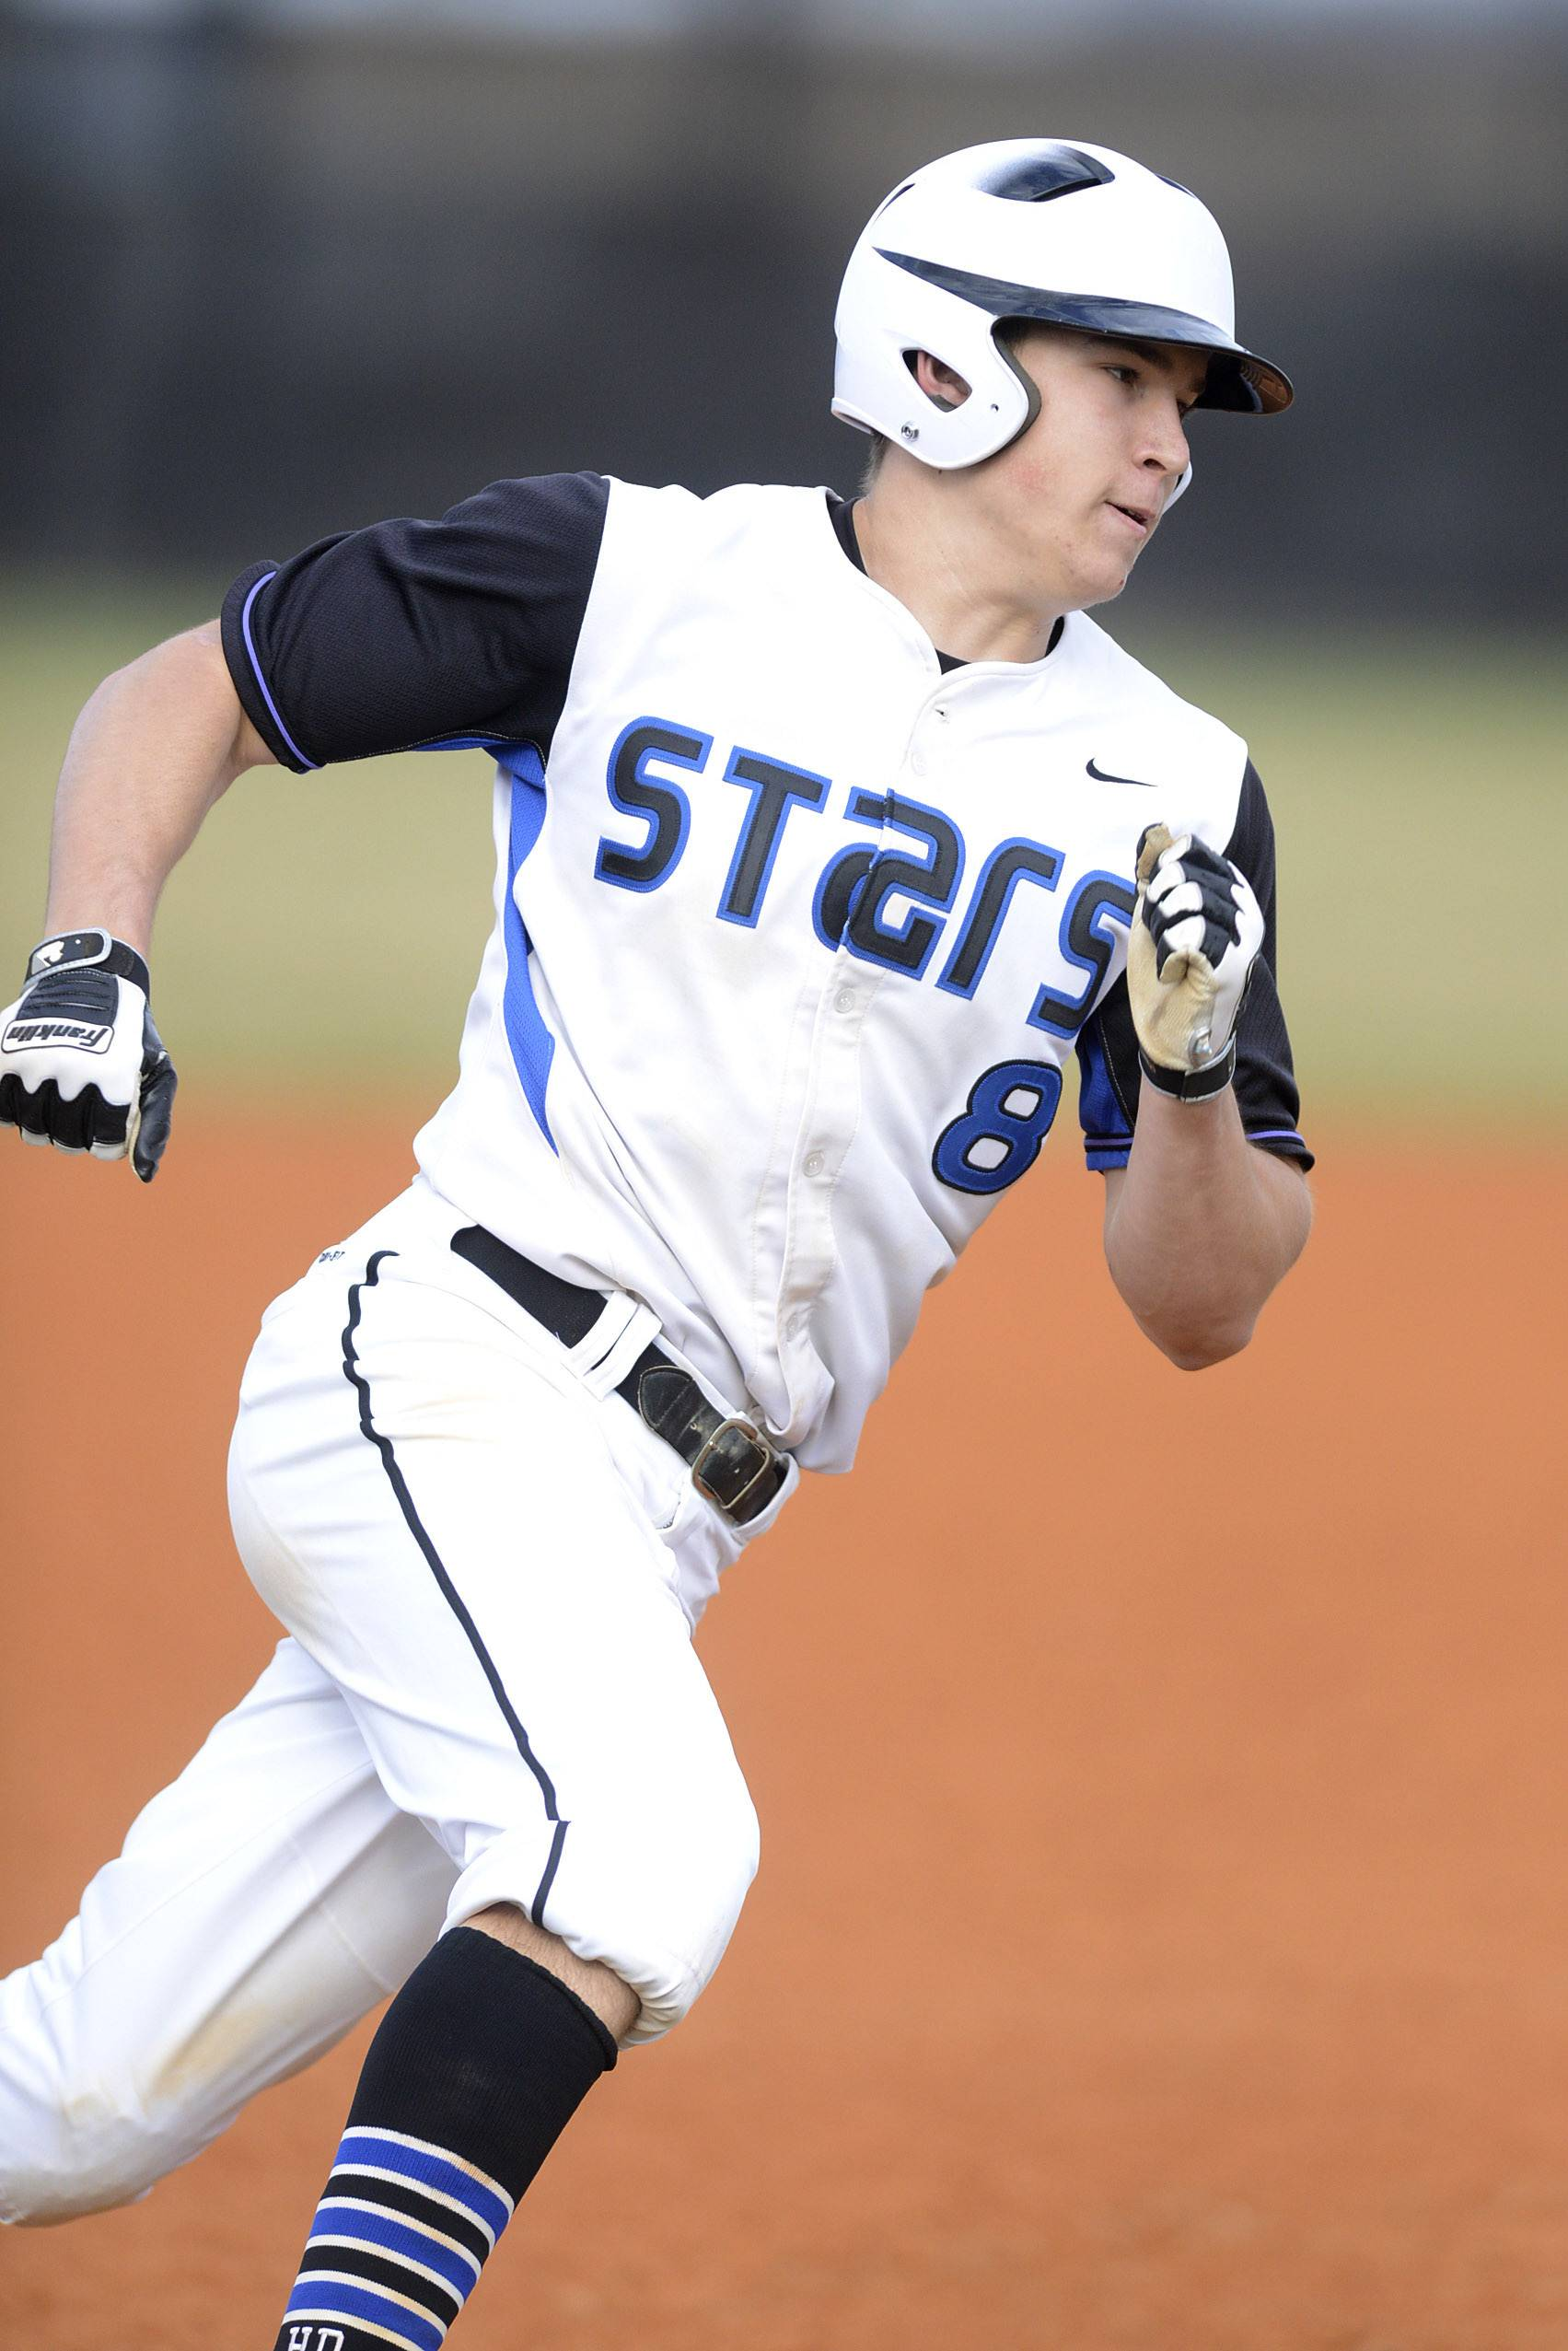 St. Charles North's Nick Drawant rounds third base on Friday, April 11.